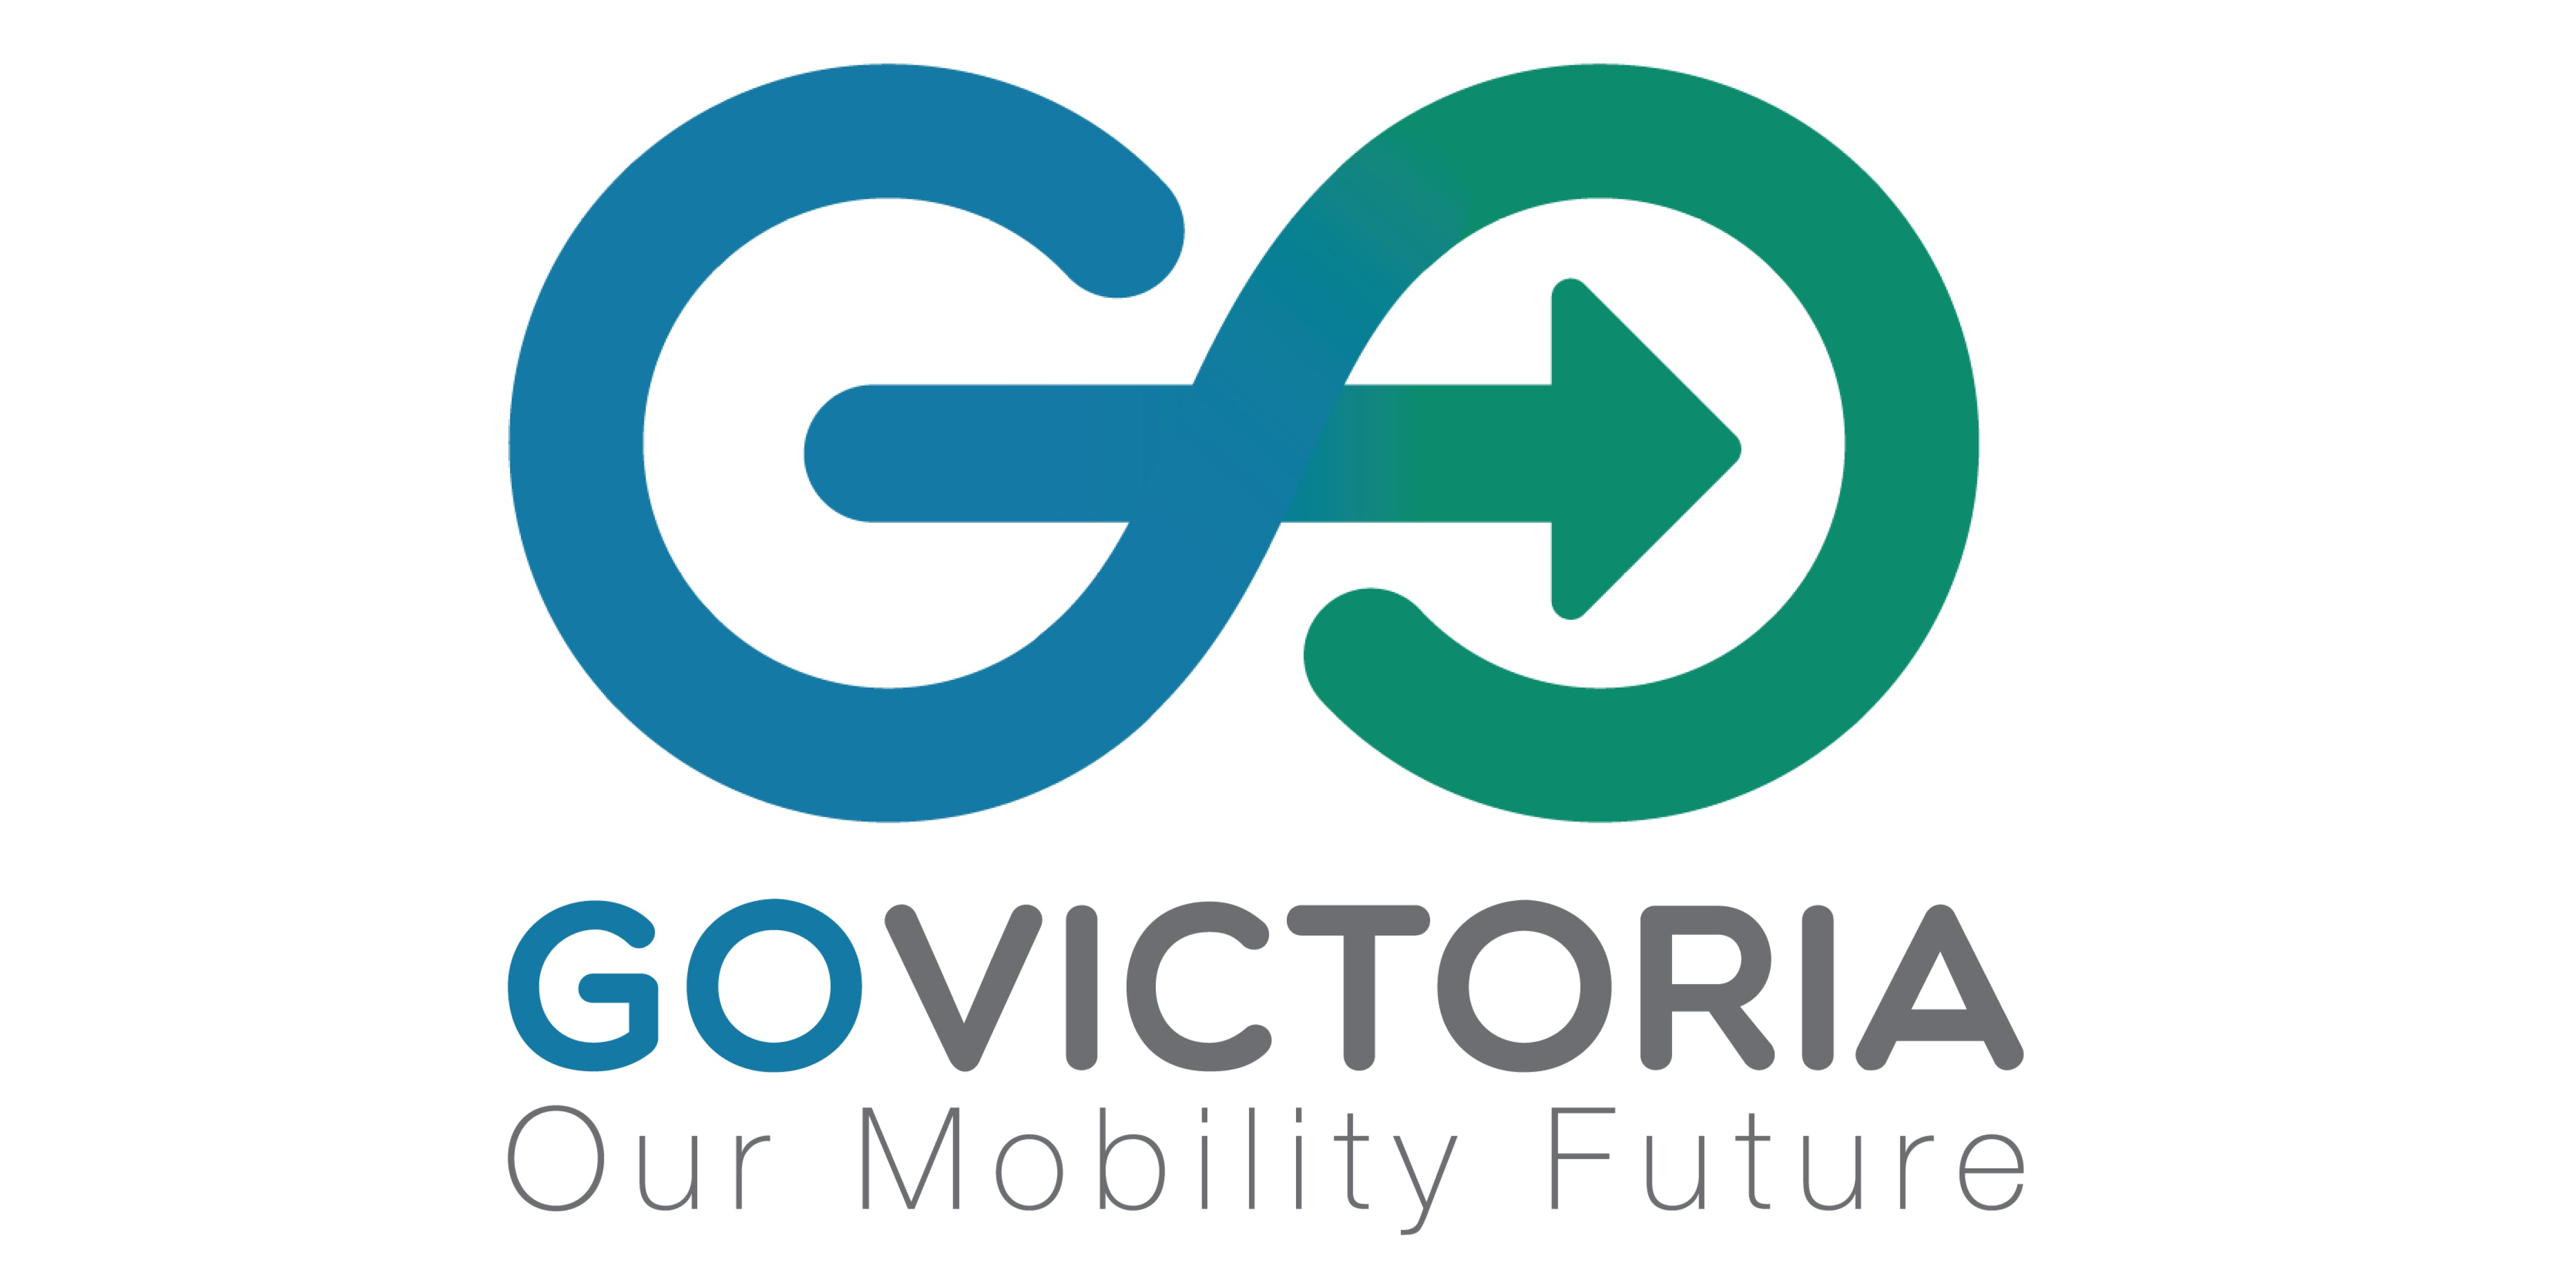 Go Victoria: Our Mobility Future